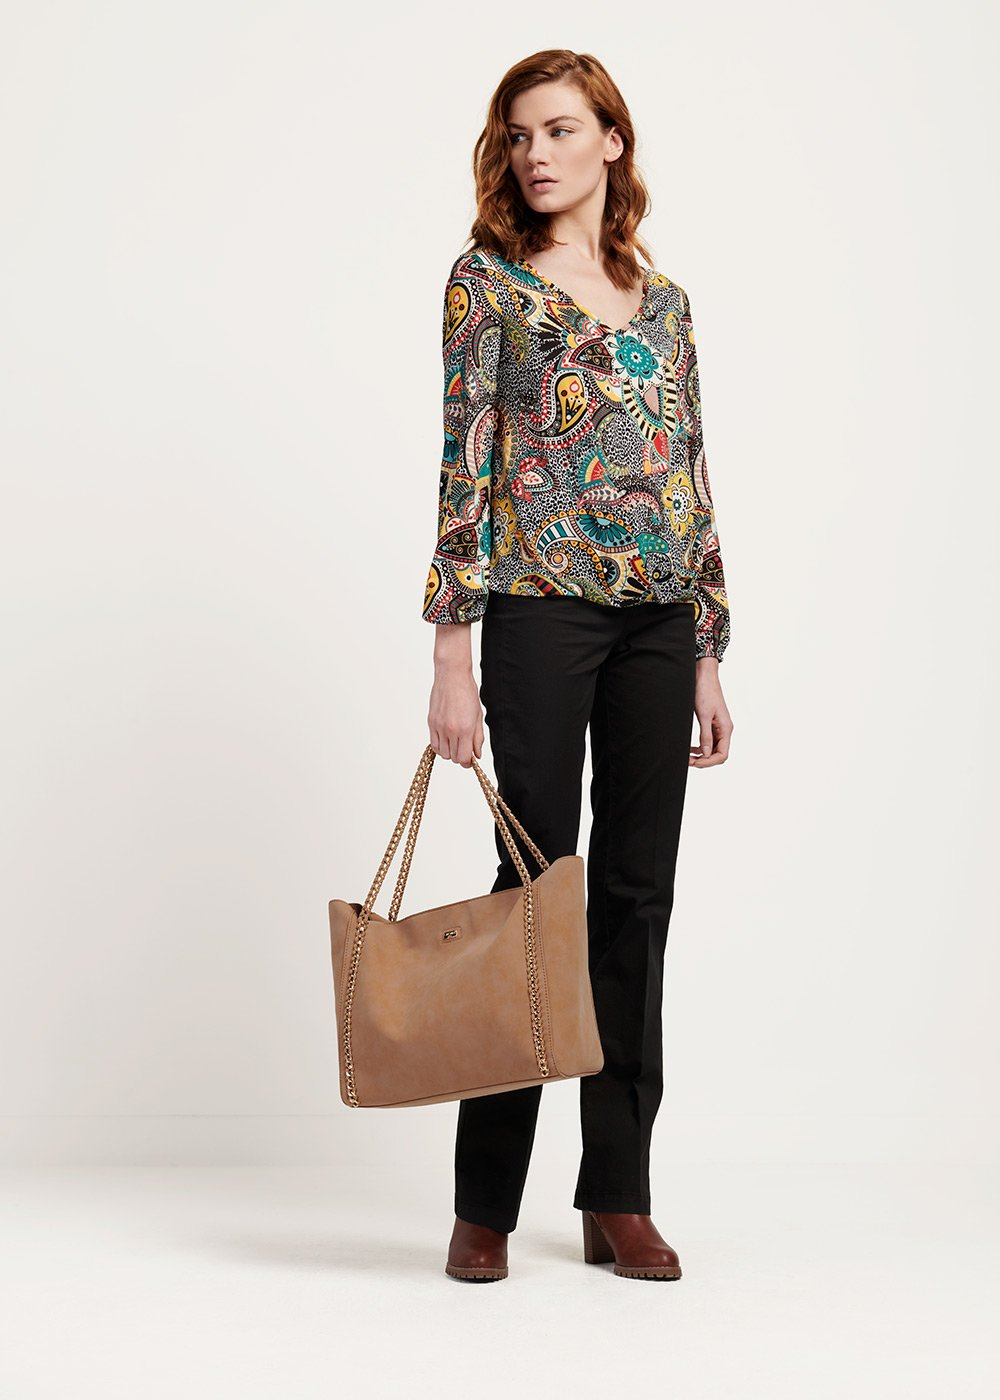 Body shopping bag with chain handle - Doeskin - Woman